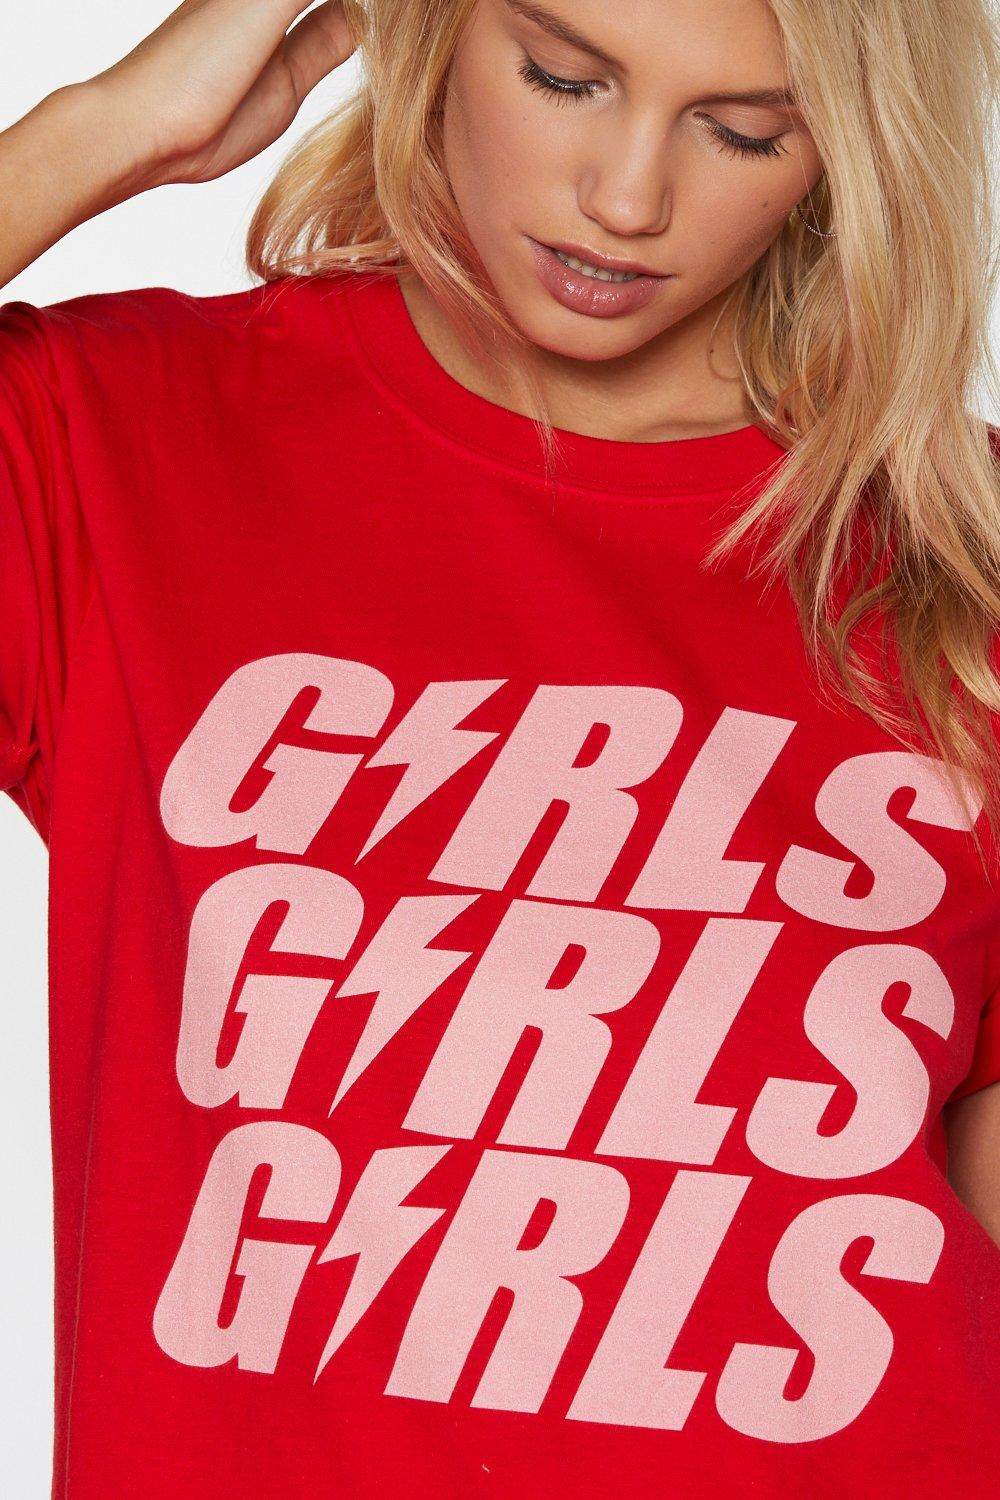 aa21a909 Girls Girls Girls Tee | Shop Clothes at Nasty Gal!